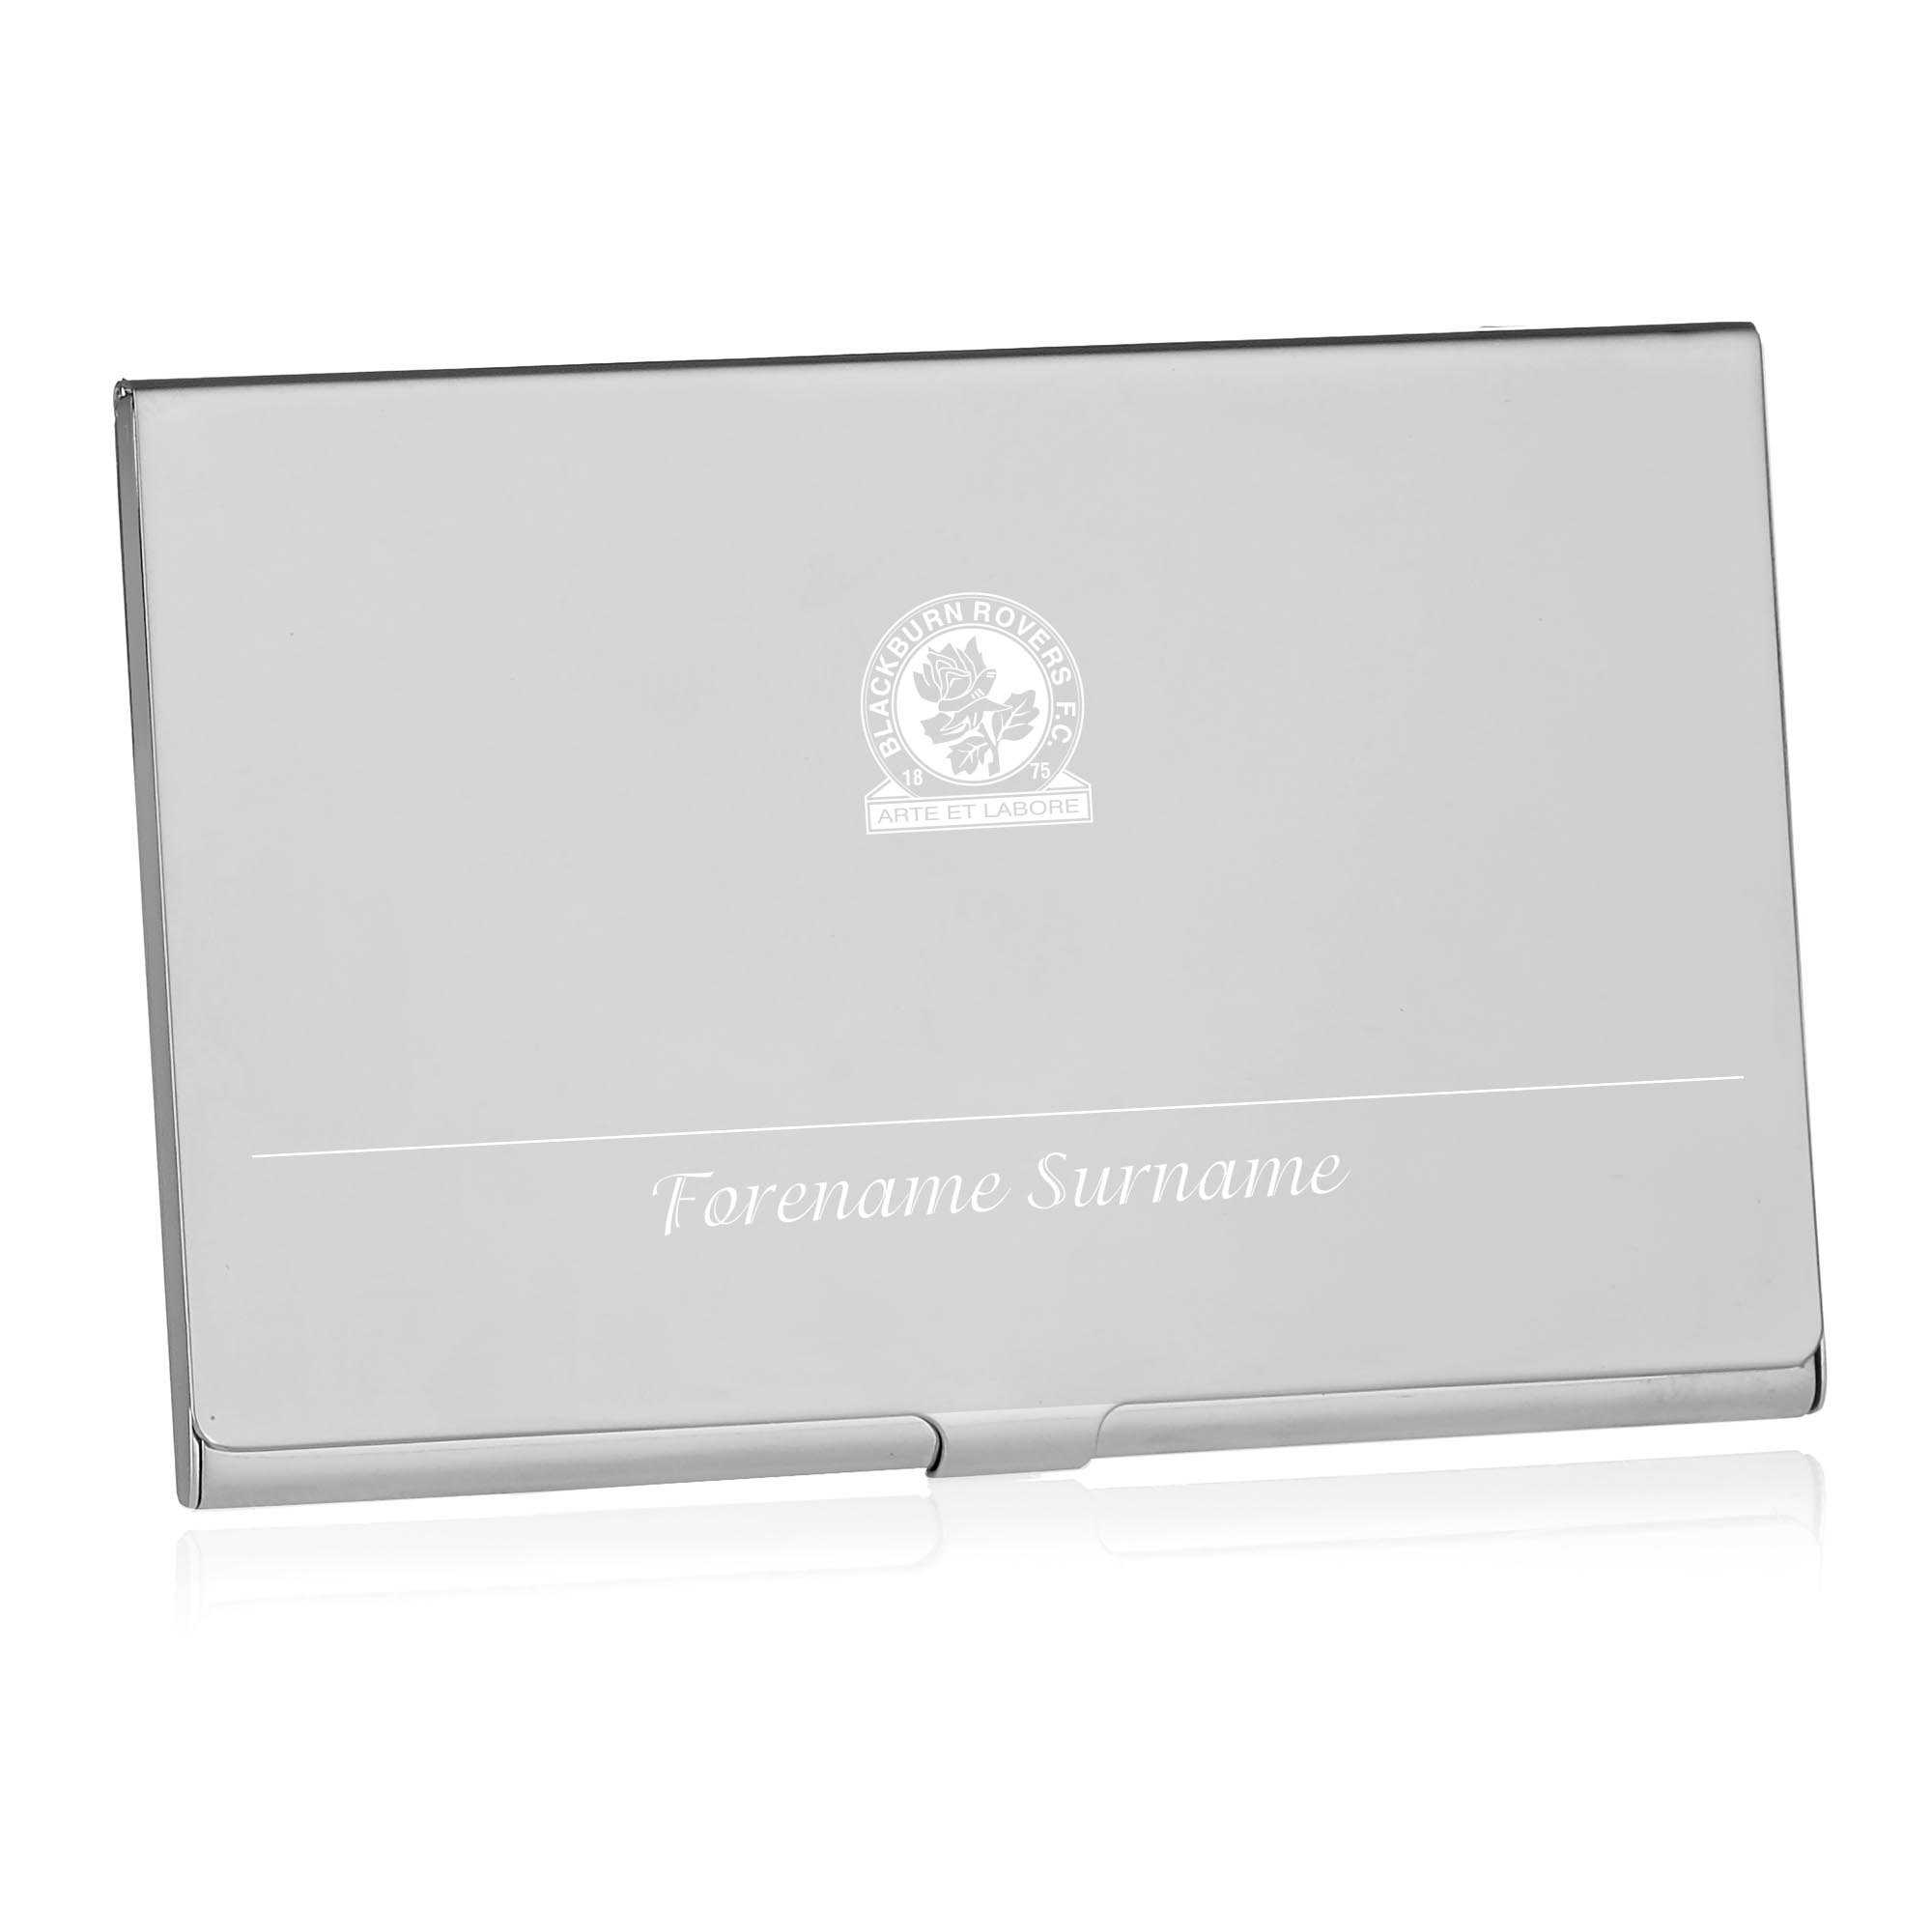 Blackburn Rovers FC Executive Business Card Holder